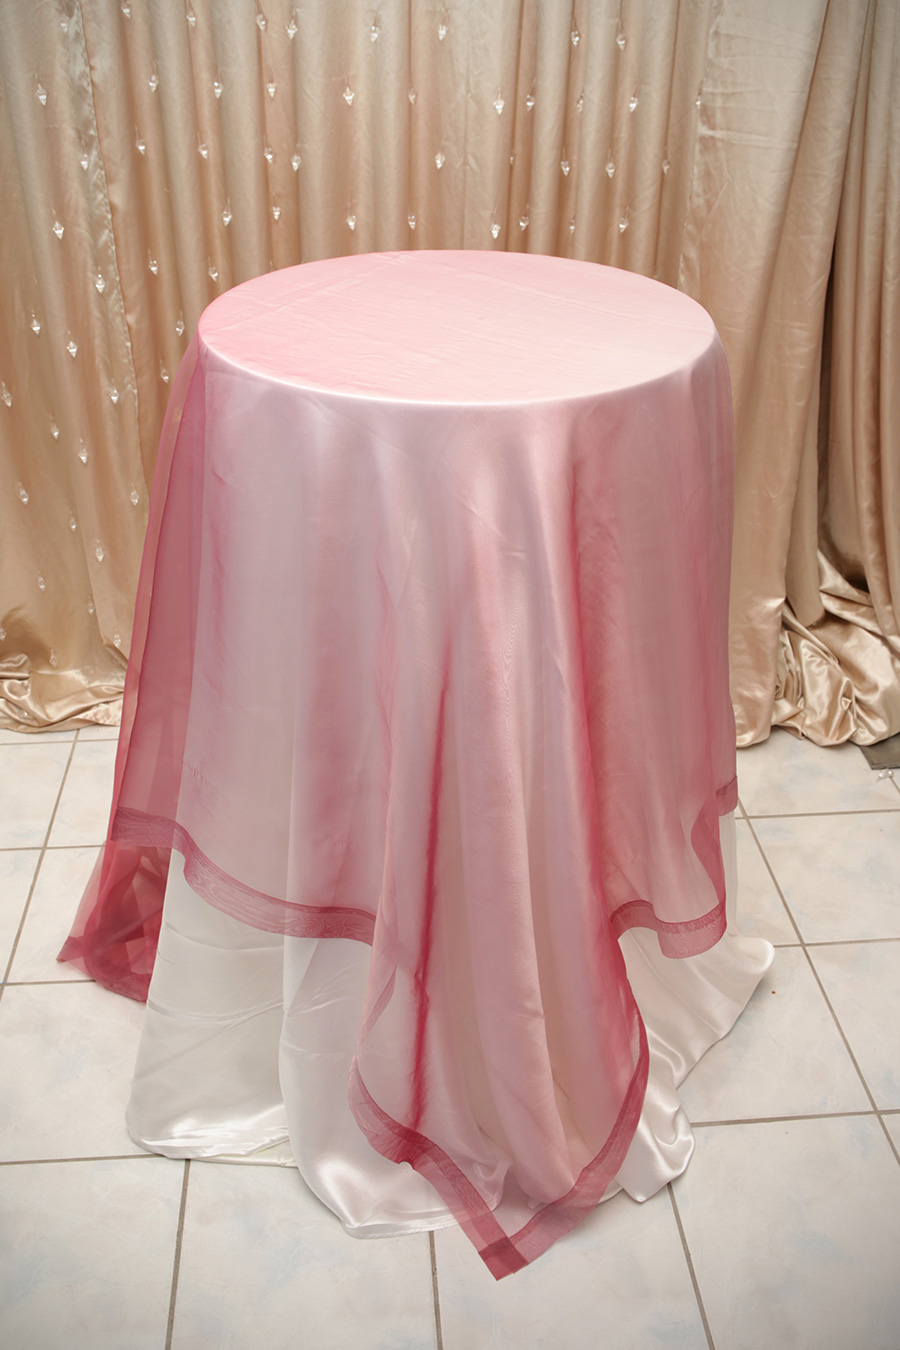 Sheer Overlay Table Cover Wild Raspberry